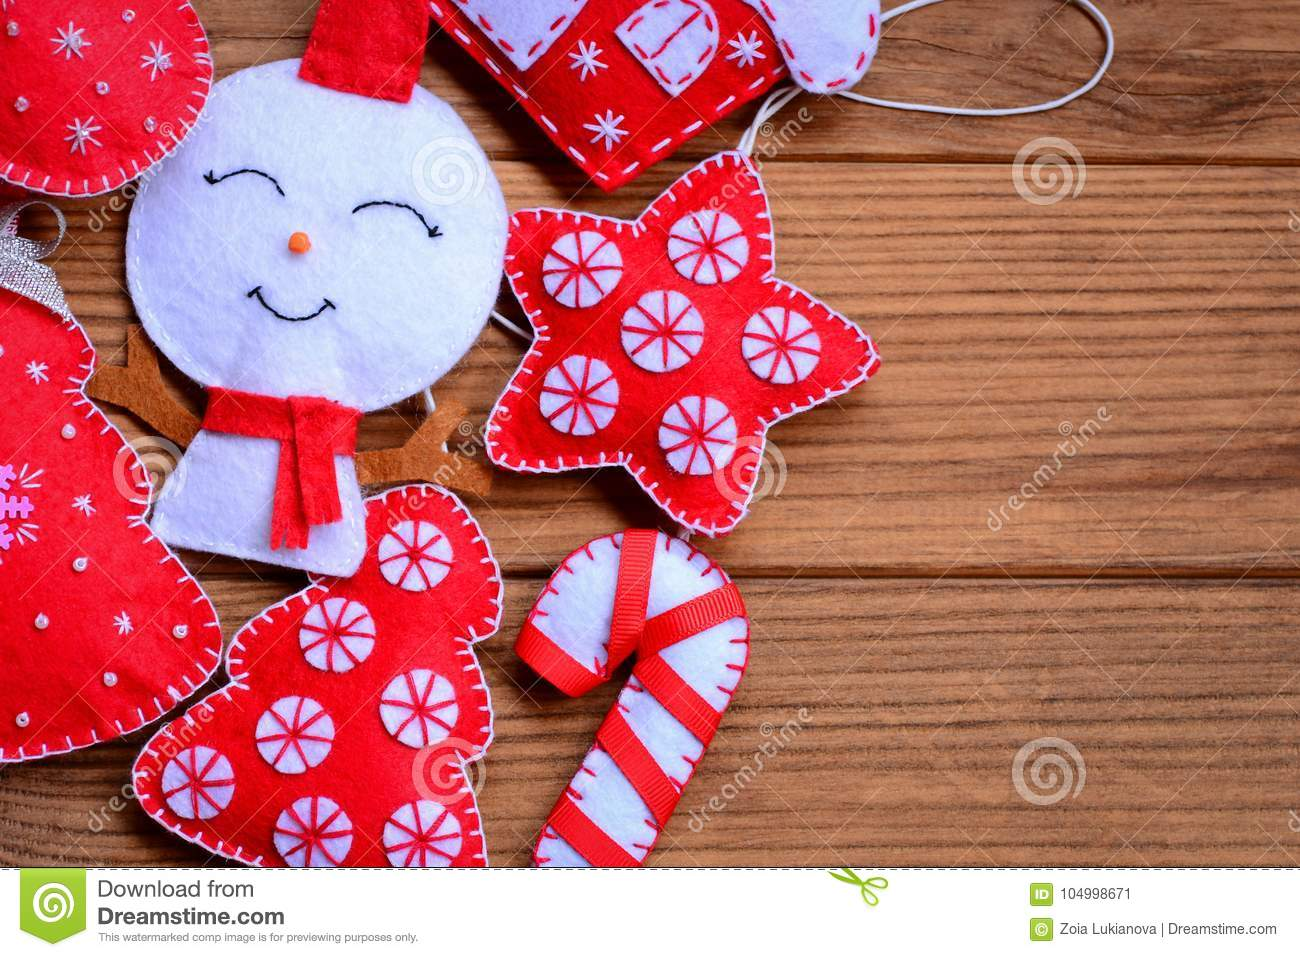 Easy Christmas Crafts To Sell.Felt Christmas Decorations On A Wooden Background With Copy